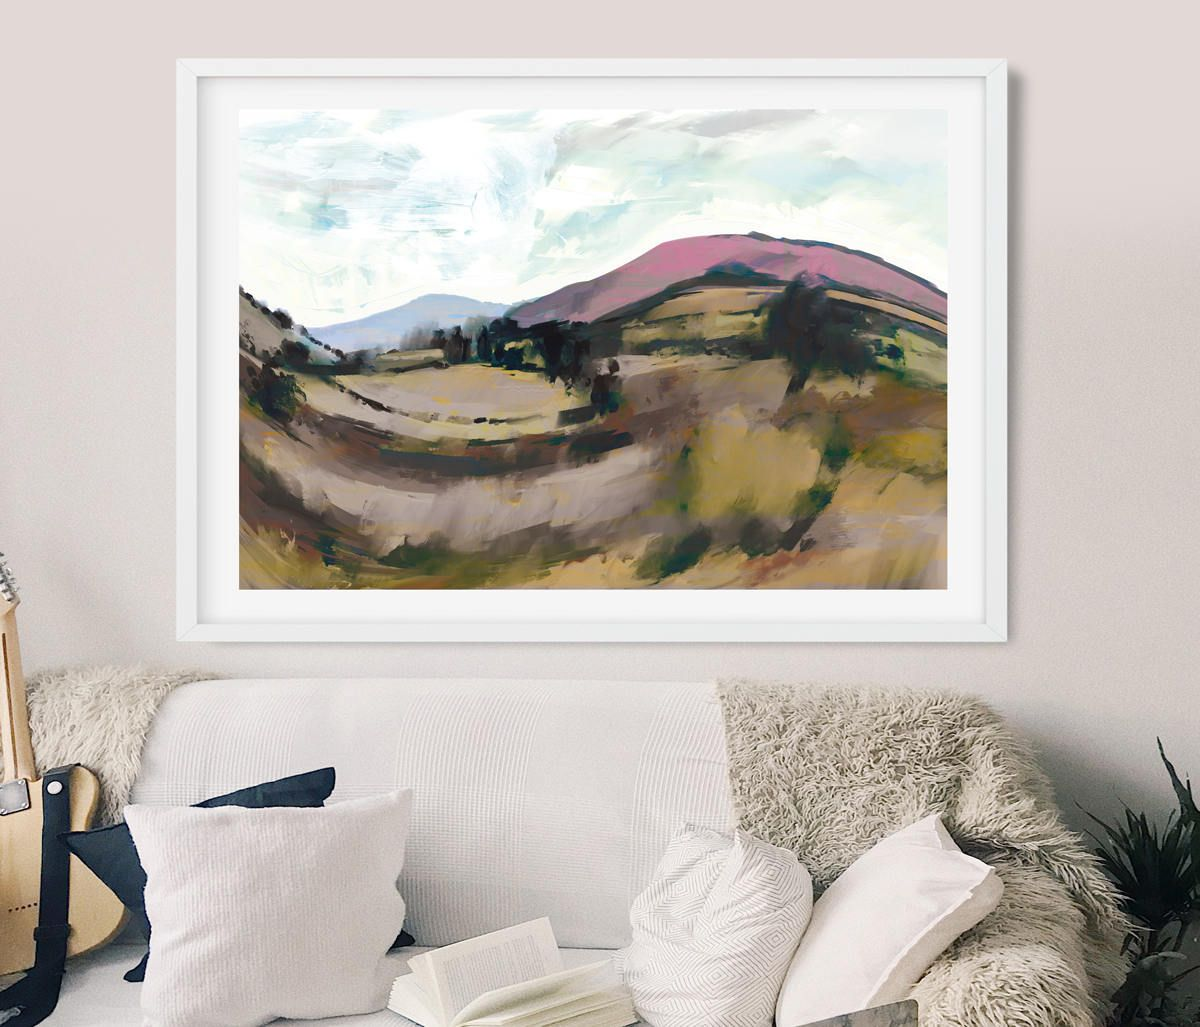 Abstract Landscape Painting Instant Download Art Dartmoor View England Landscape Large Wall Art By Artist Dan Hobday Light Gold Colours Abstract Landscape Painting Landscape Paintings Abstract Landscape